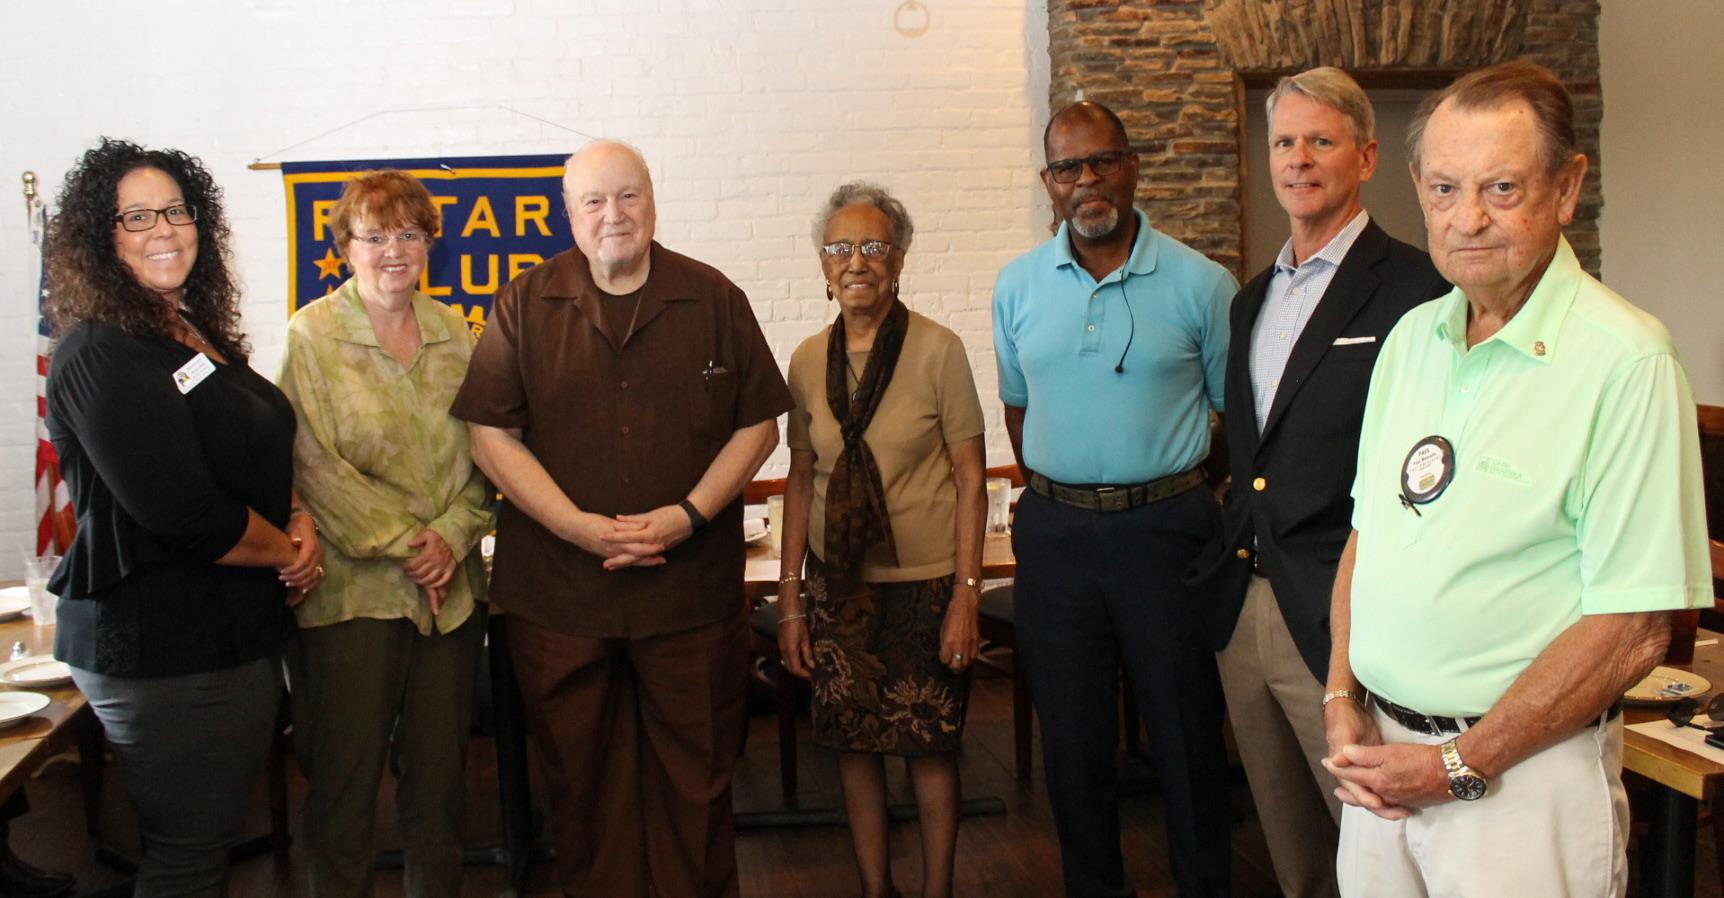 The new and returning Montclair Rotary Club officers are seen with District Governor Shelby Rhodes (far left).  Left to right are Linda Cranston,